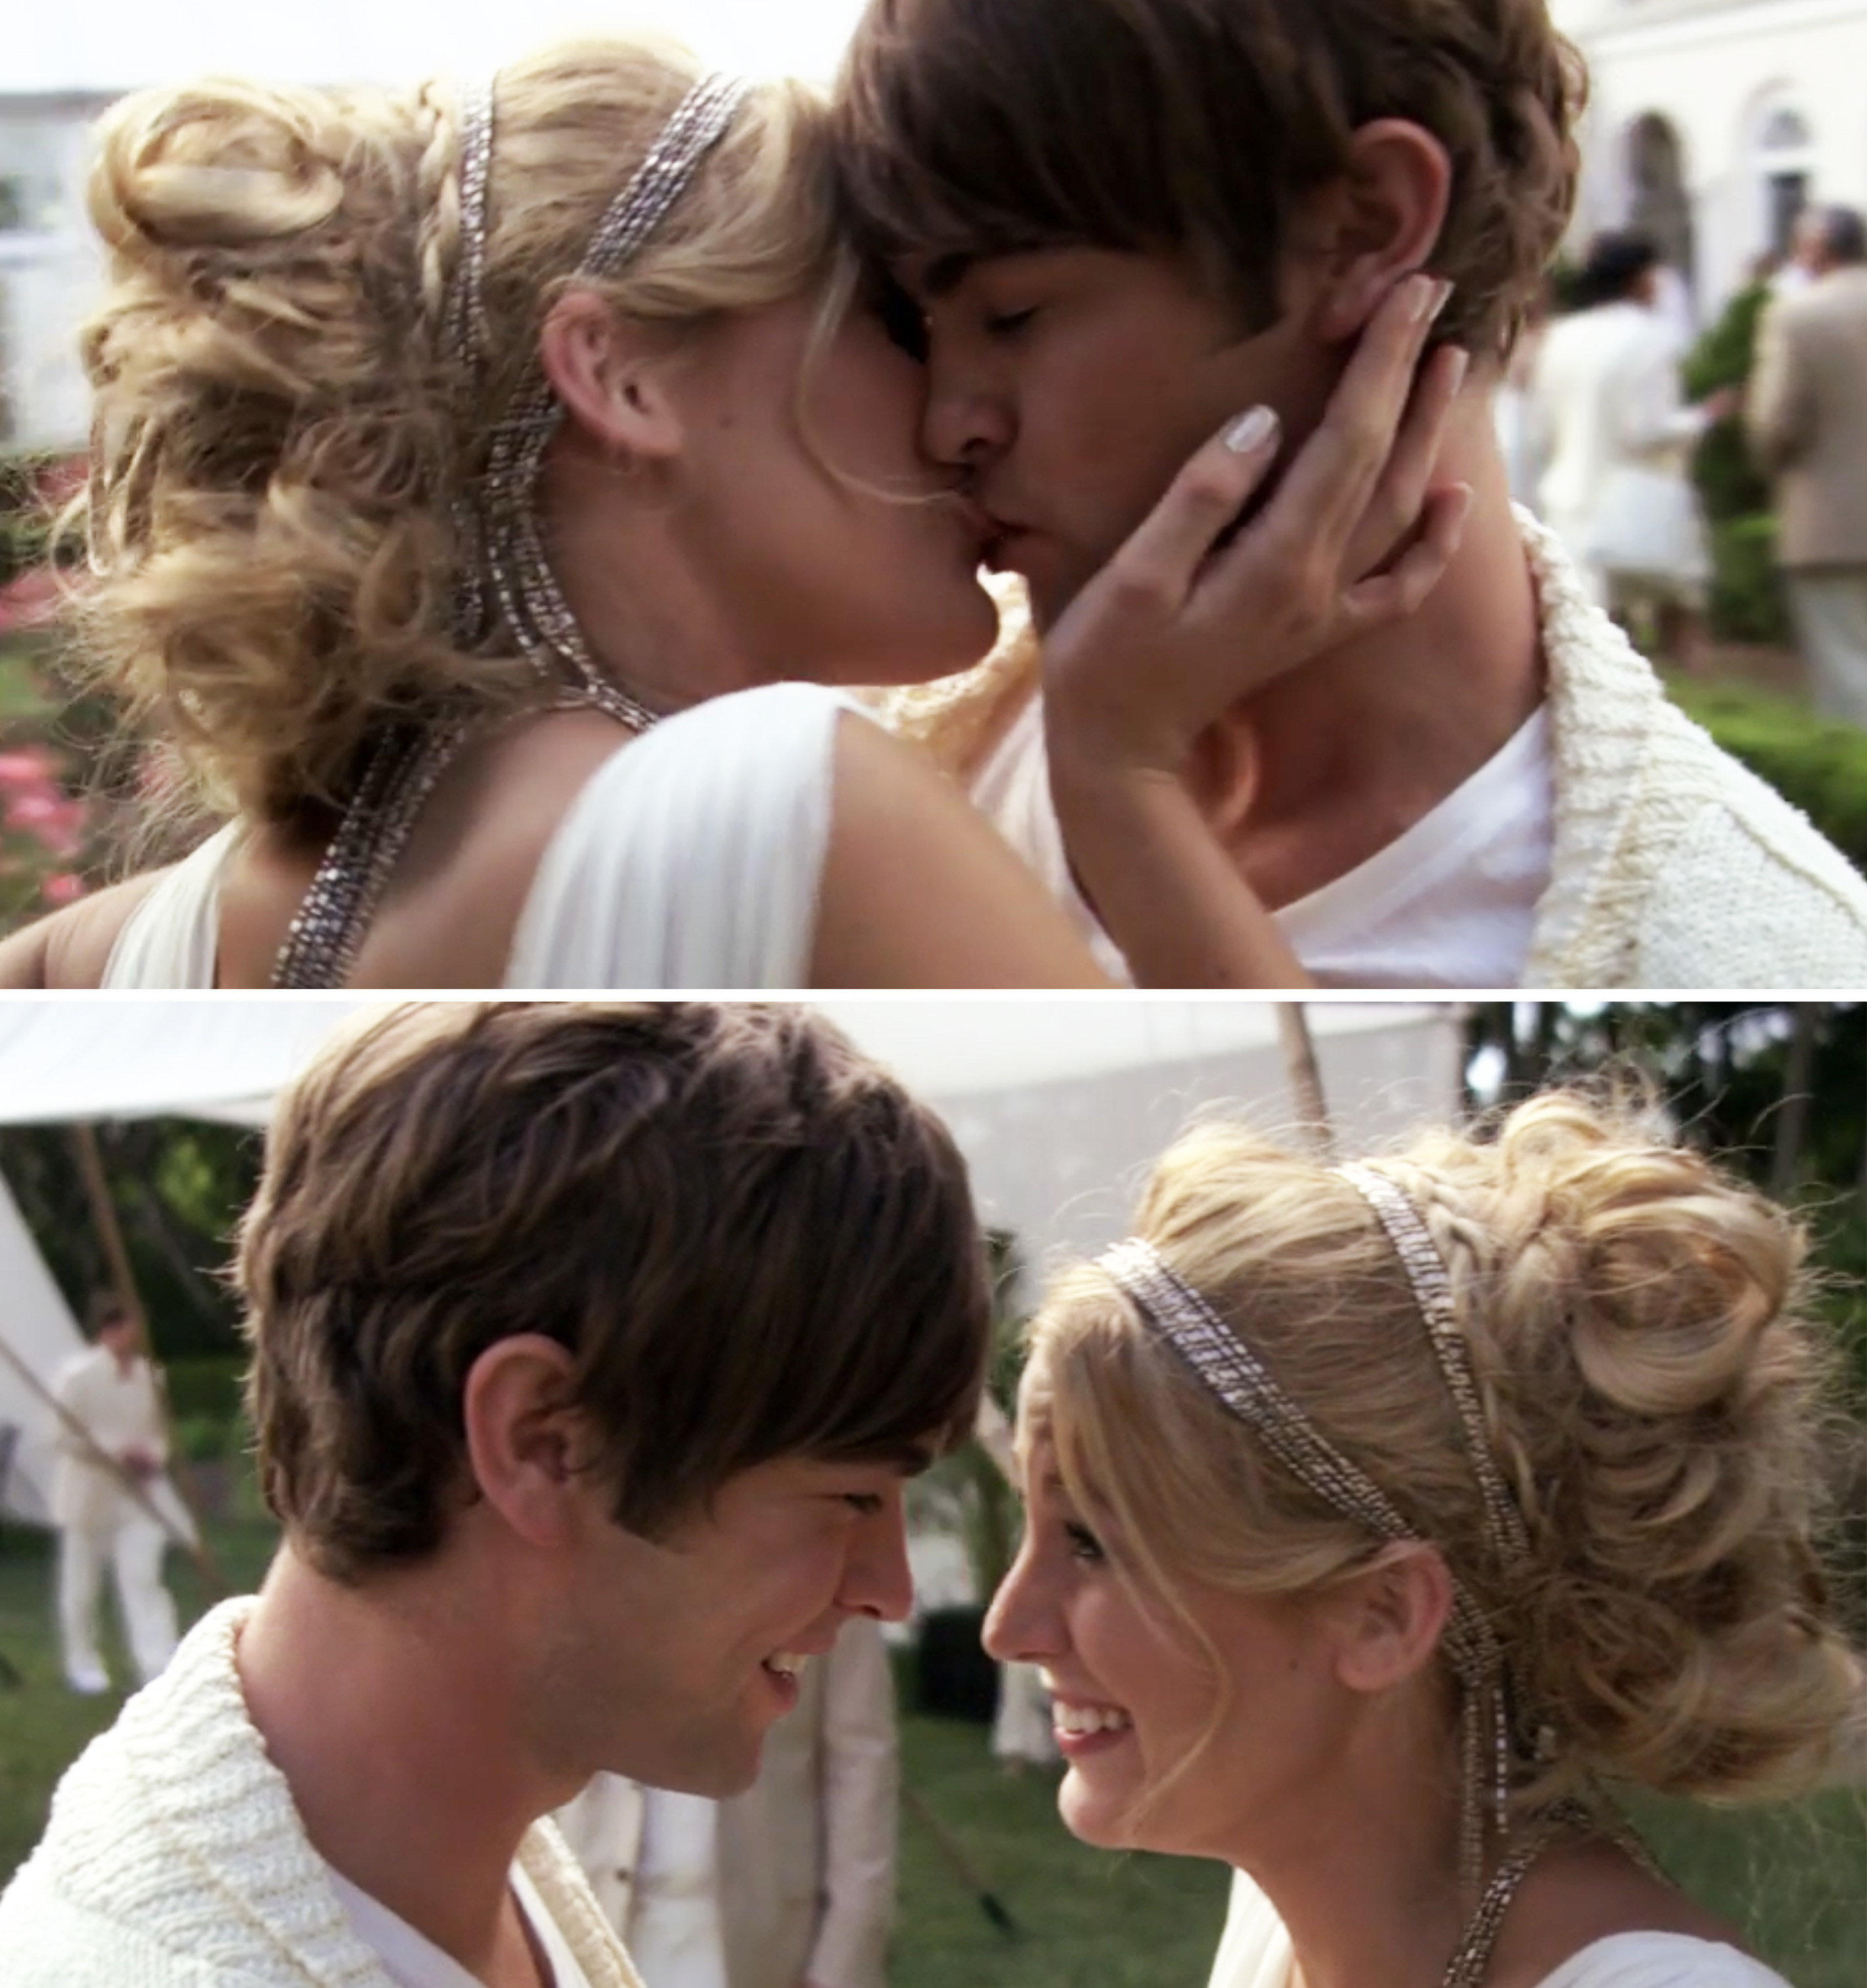 Nate and Serena kissing at the white party